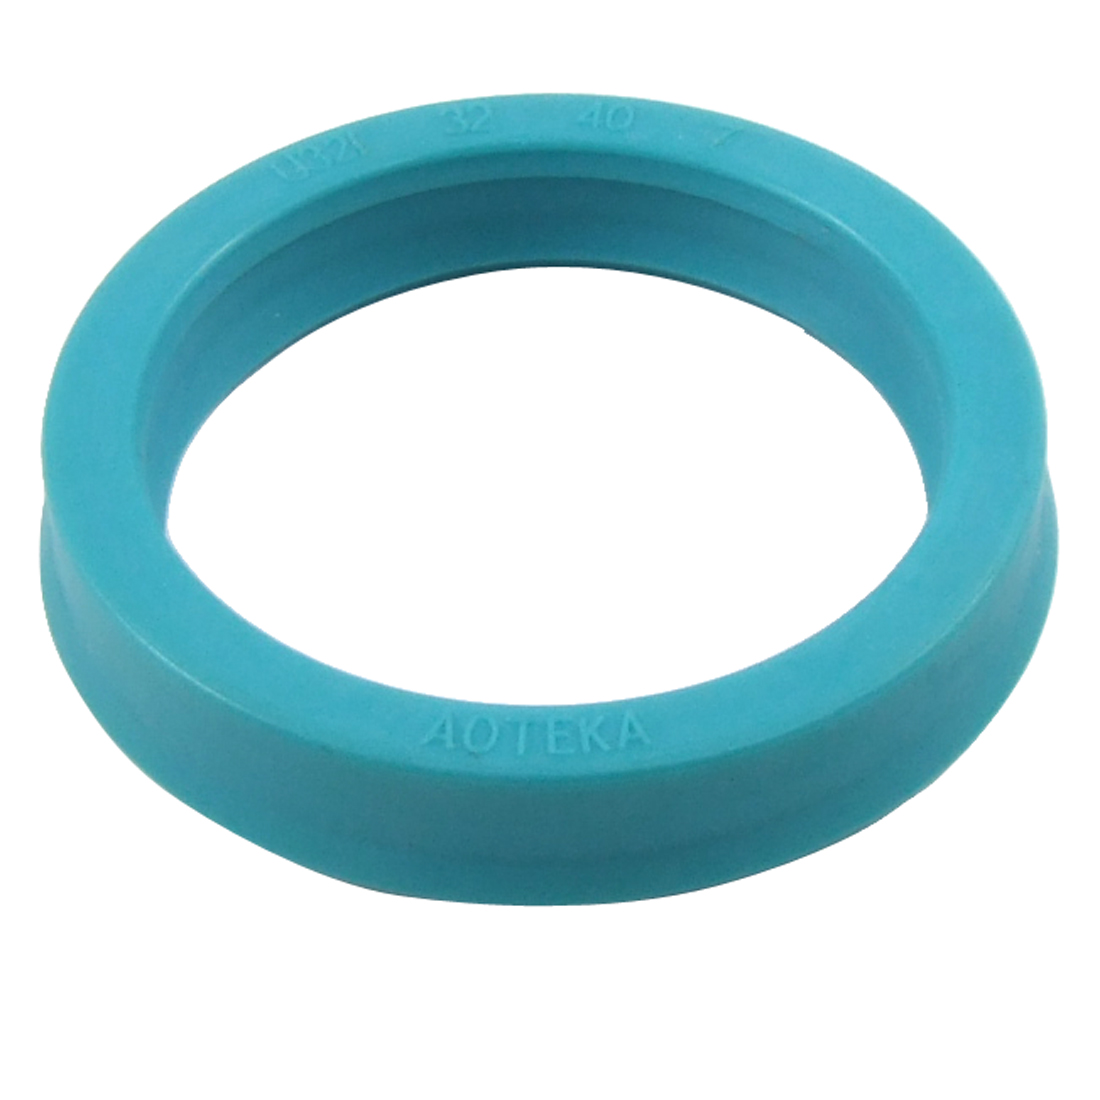 32x40x7mm U32i Metric Single Lipped Hydraulic Cylinder PU Oil Seal Ring Cyan Blue